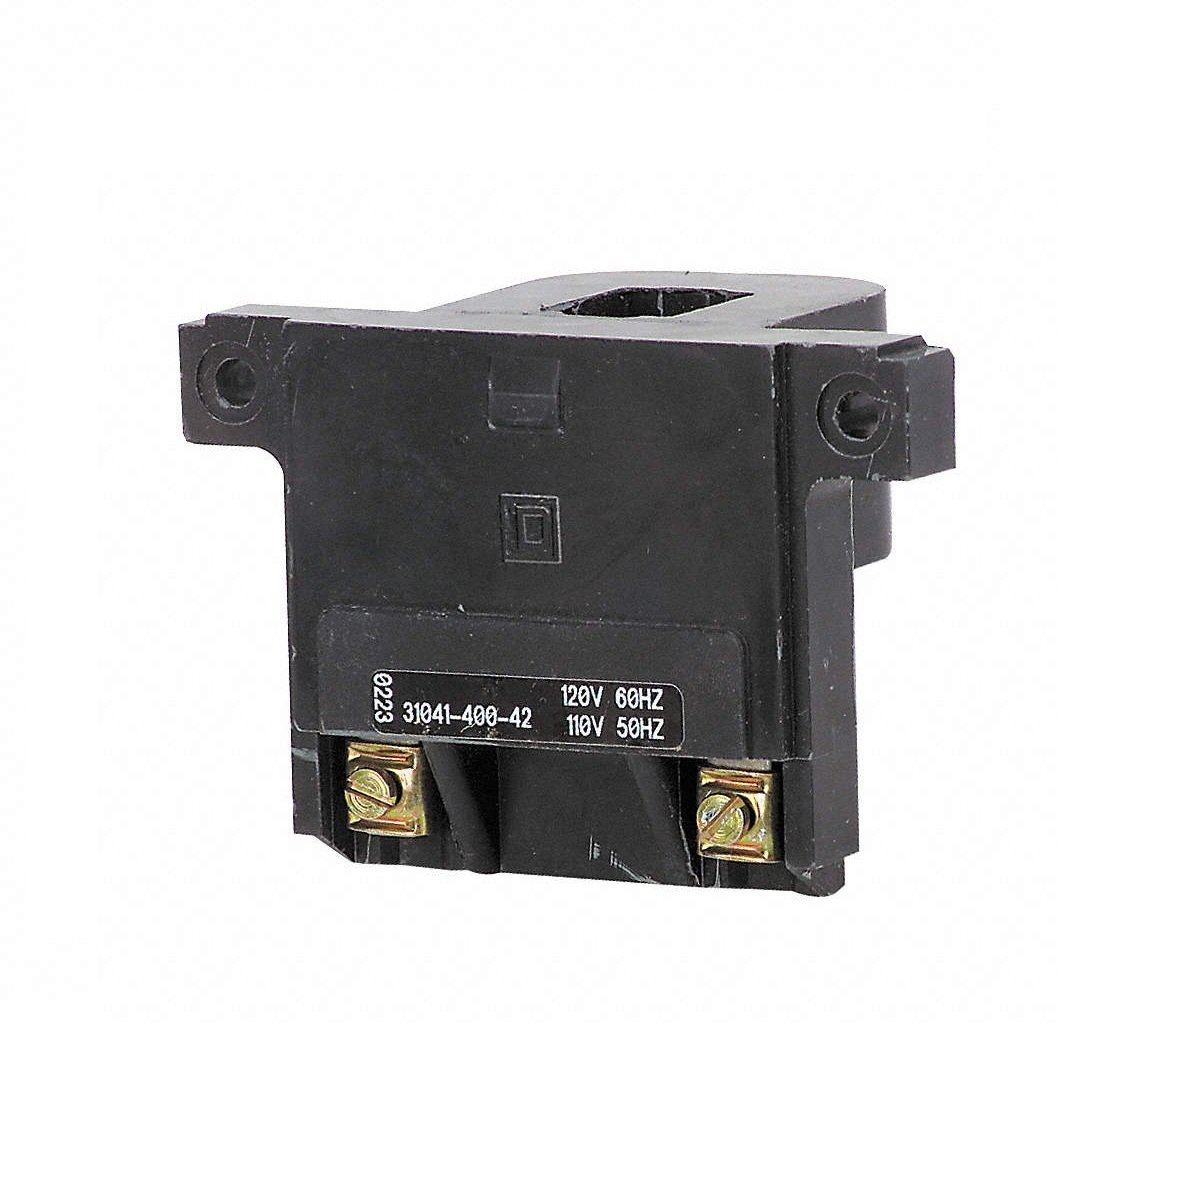 Square D 3107440047 Replacement Coil, 240VAC Volts Starter Size: 3